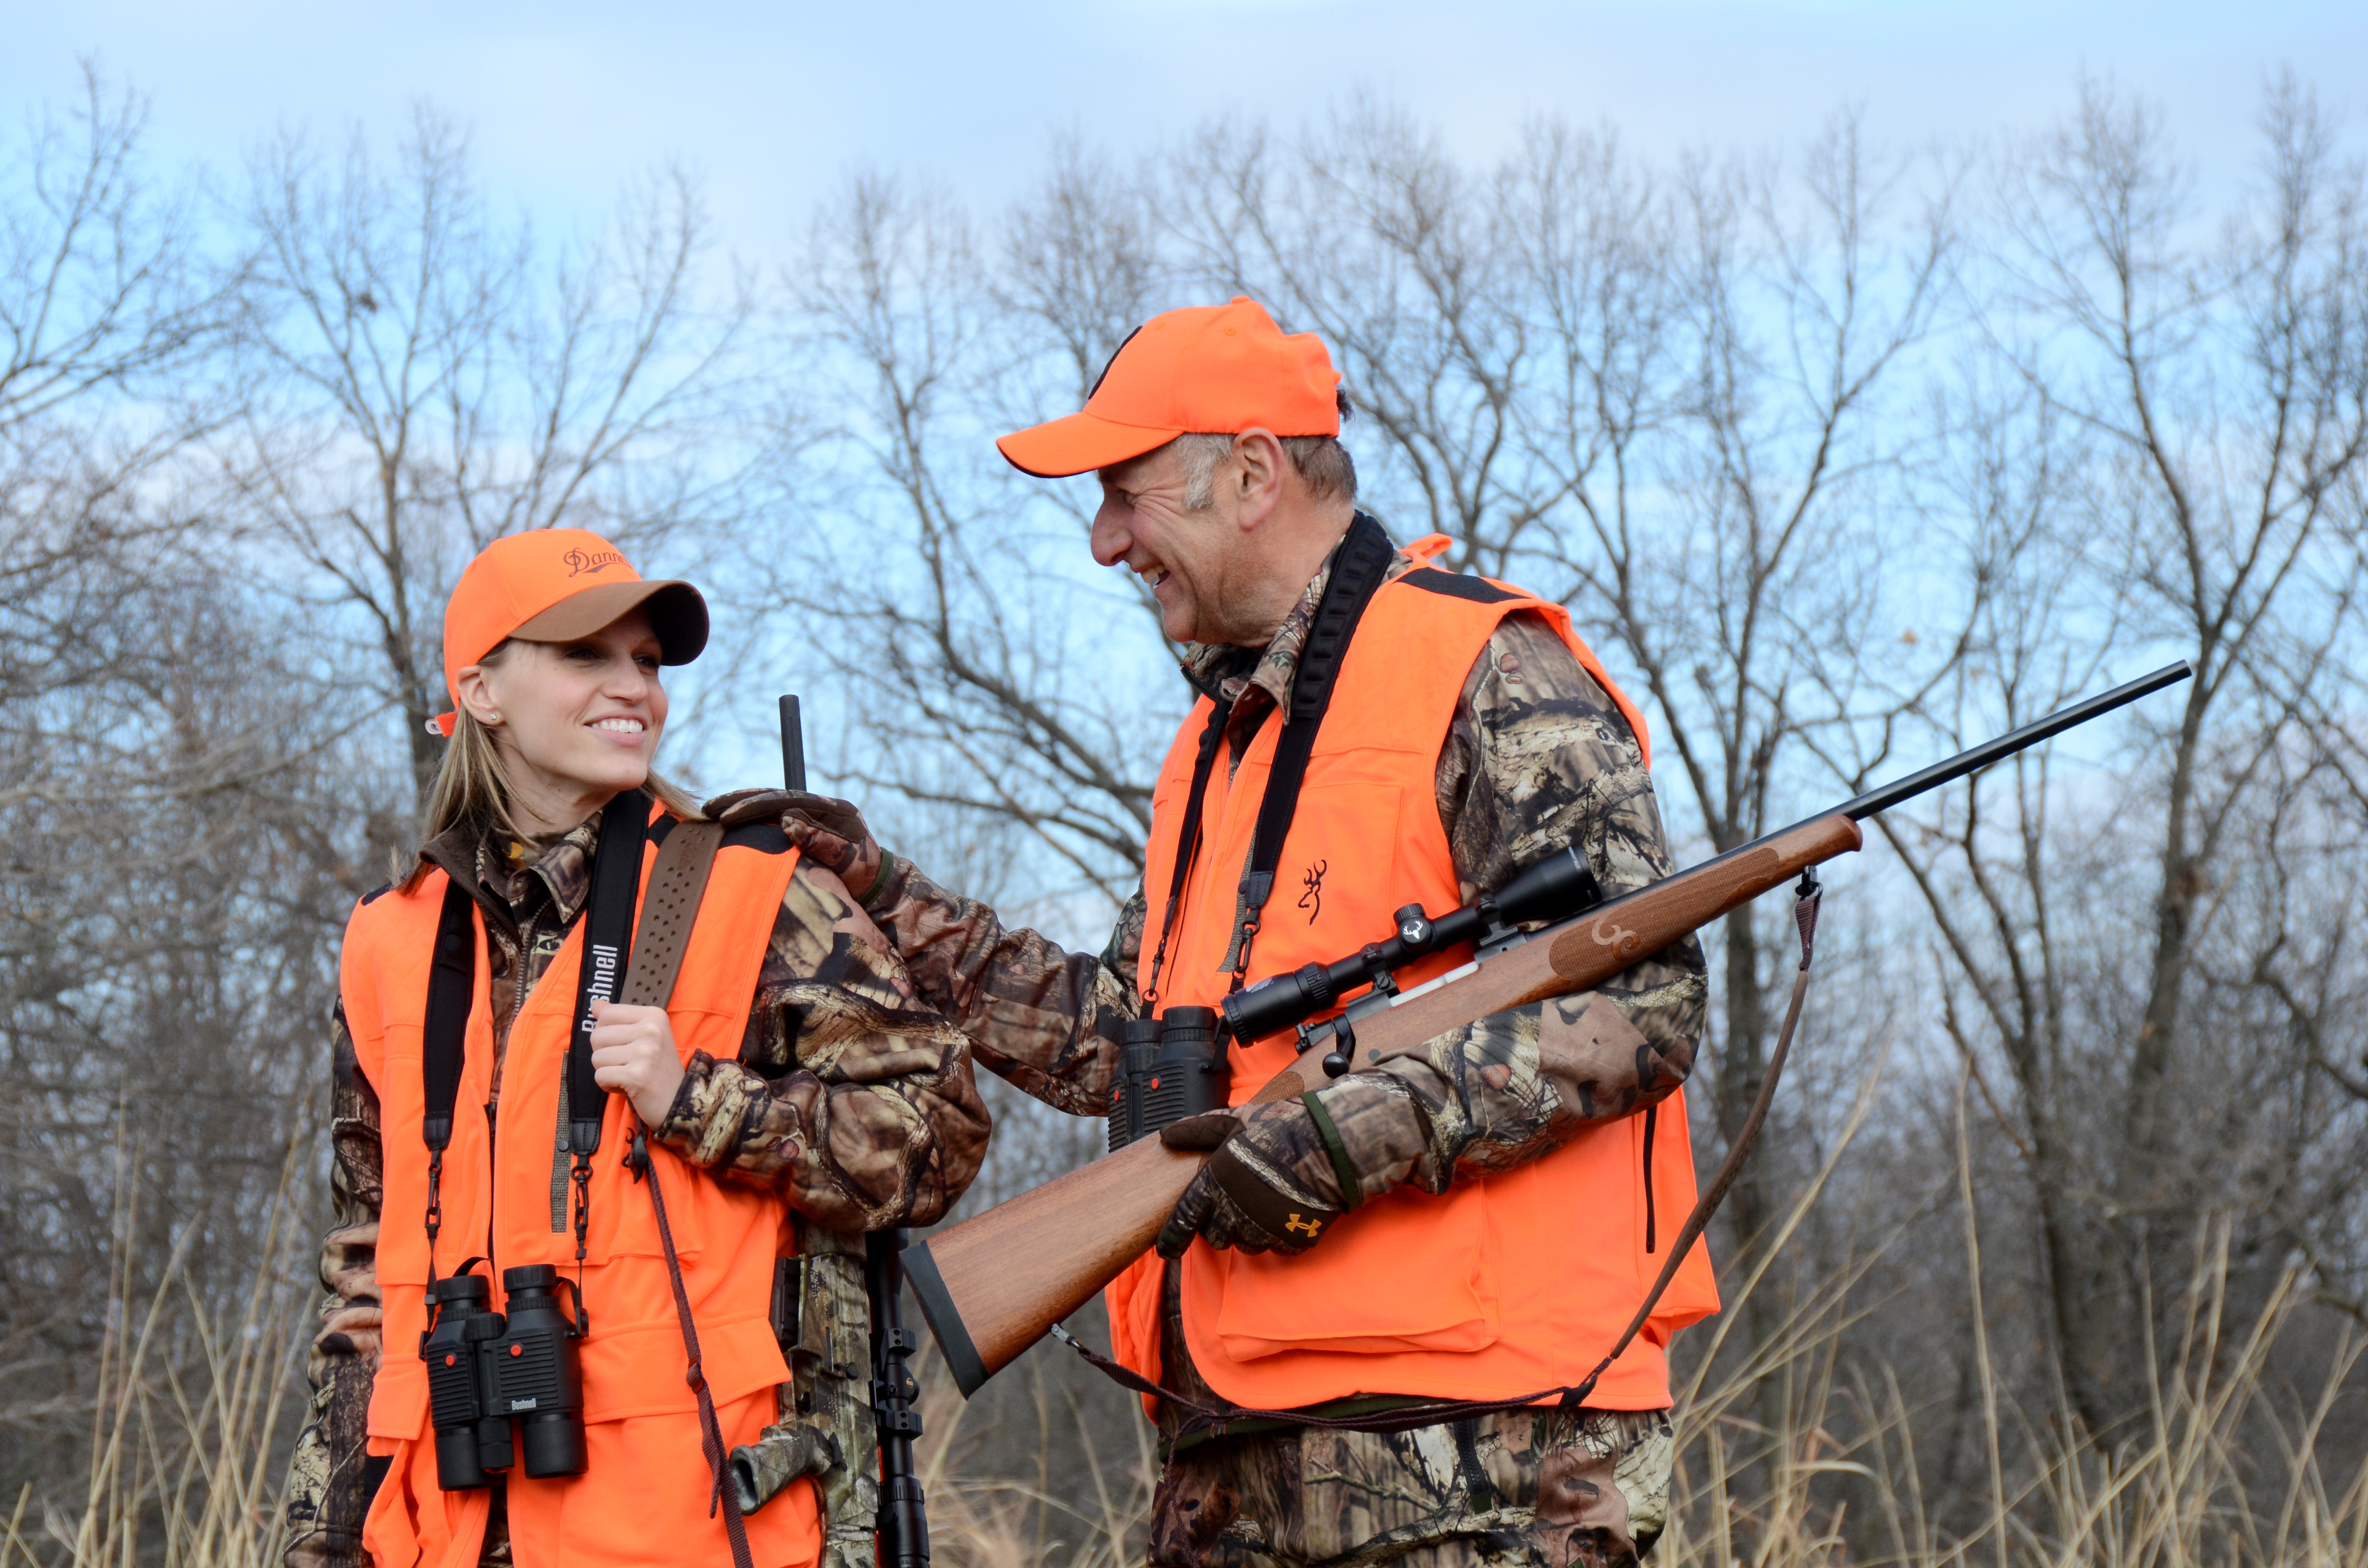 Just because you're going gun-hunting doesn't mean you can ignore the wind. Take the same scent-control approach you would if you were bowhunting, and you will see more deer.